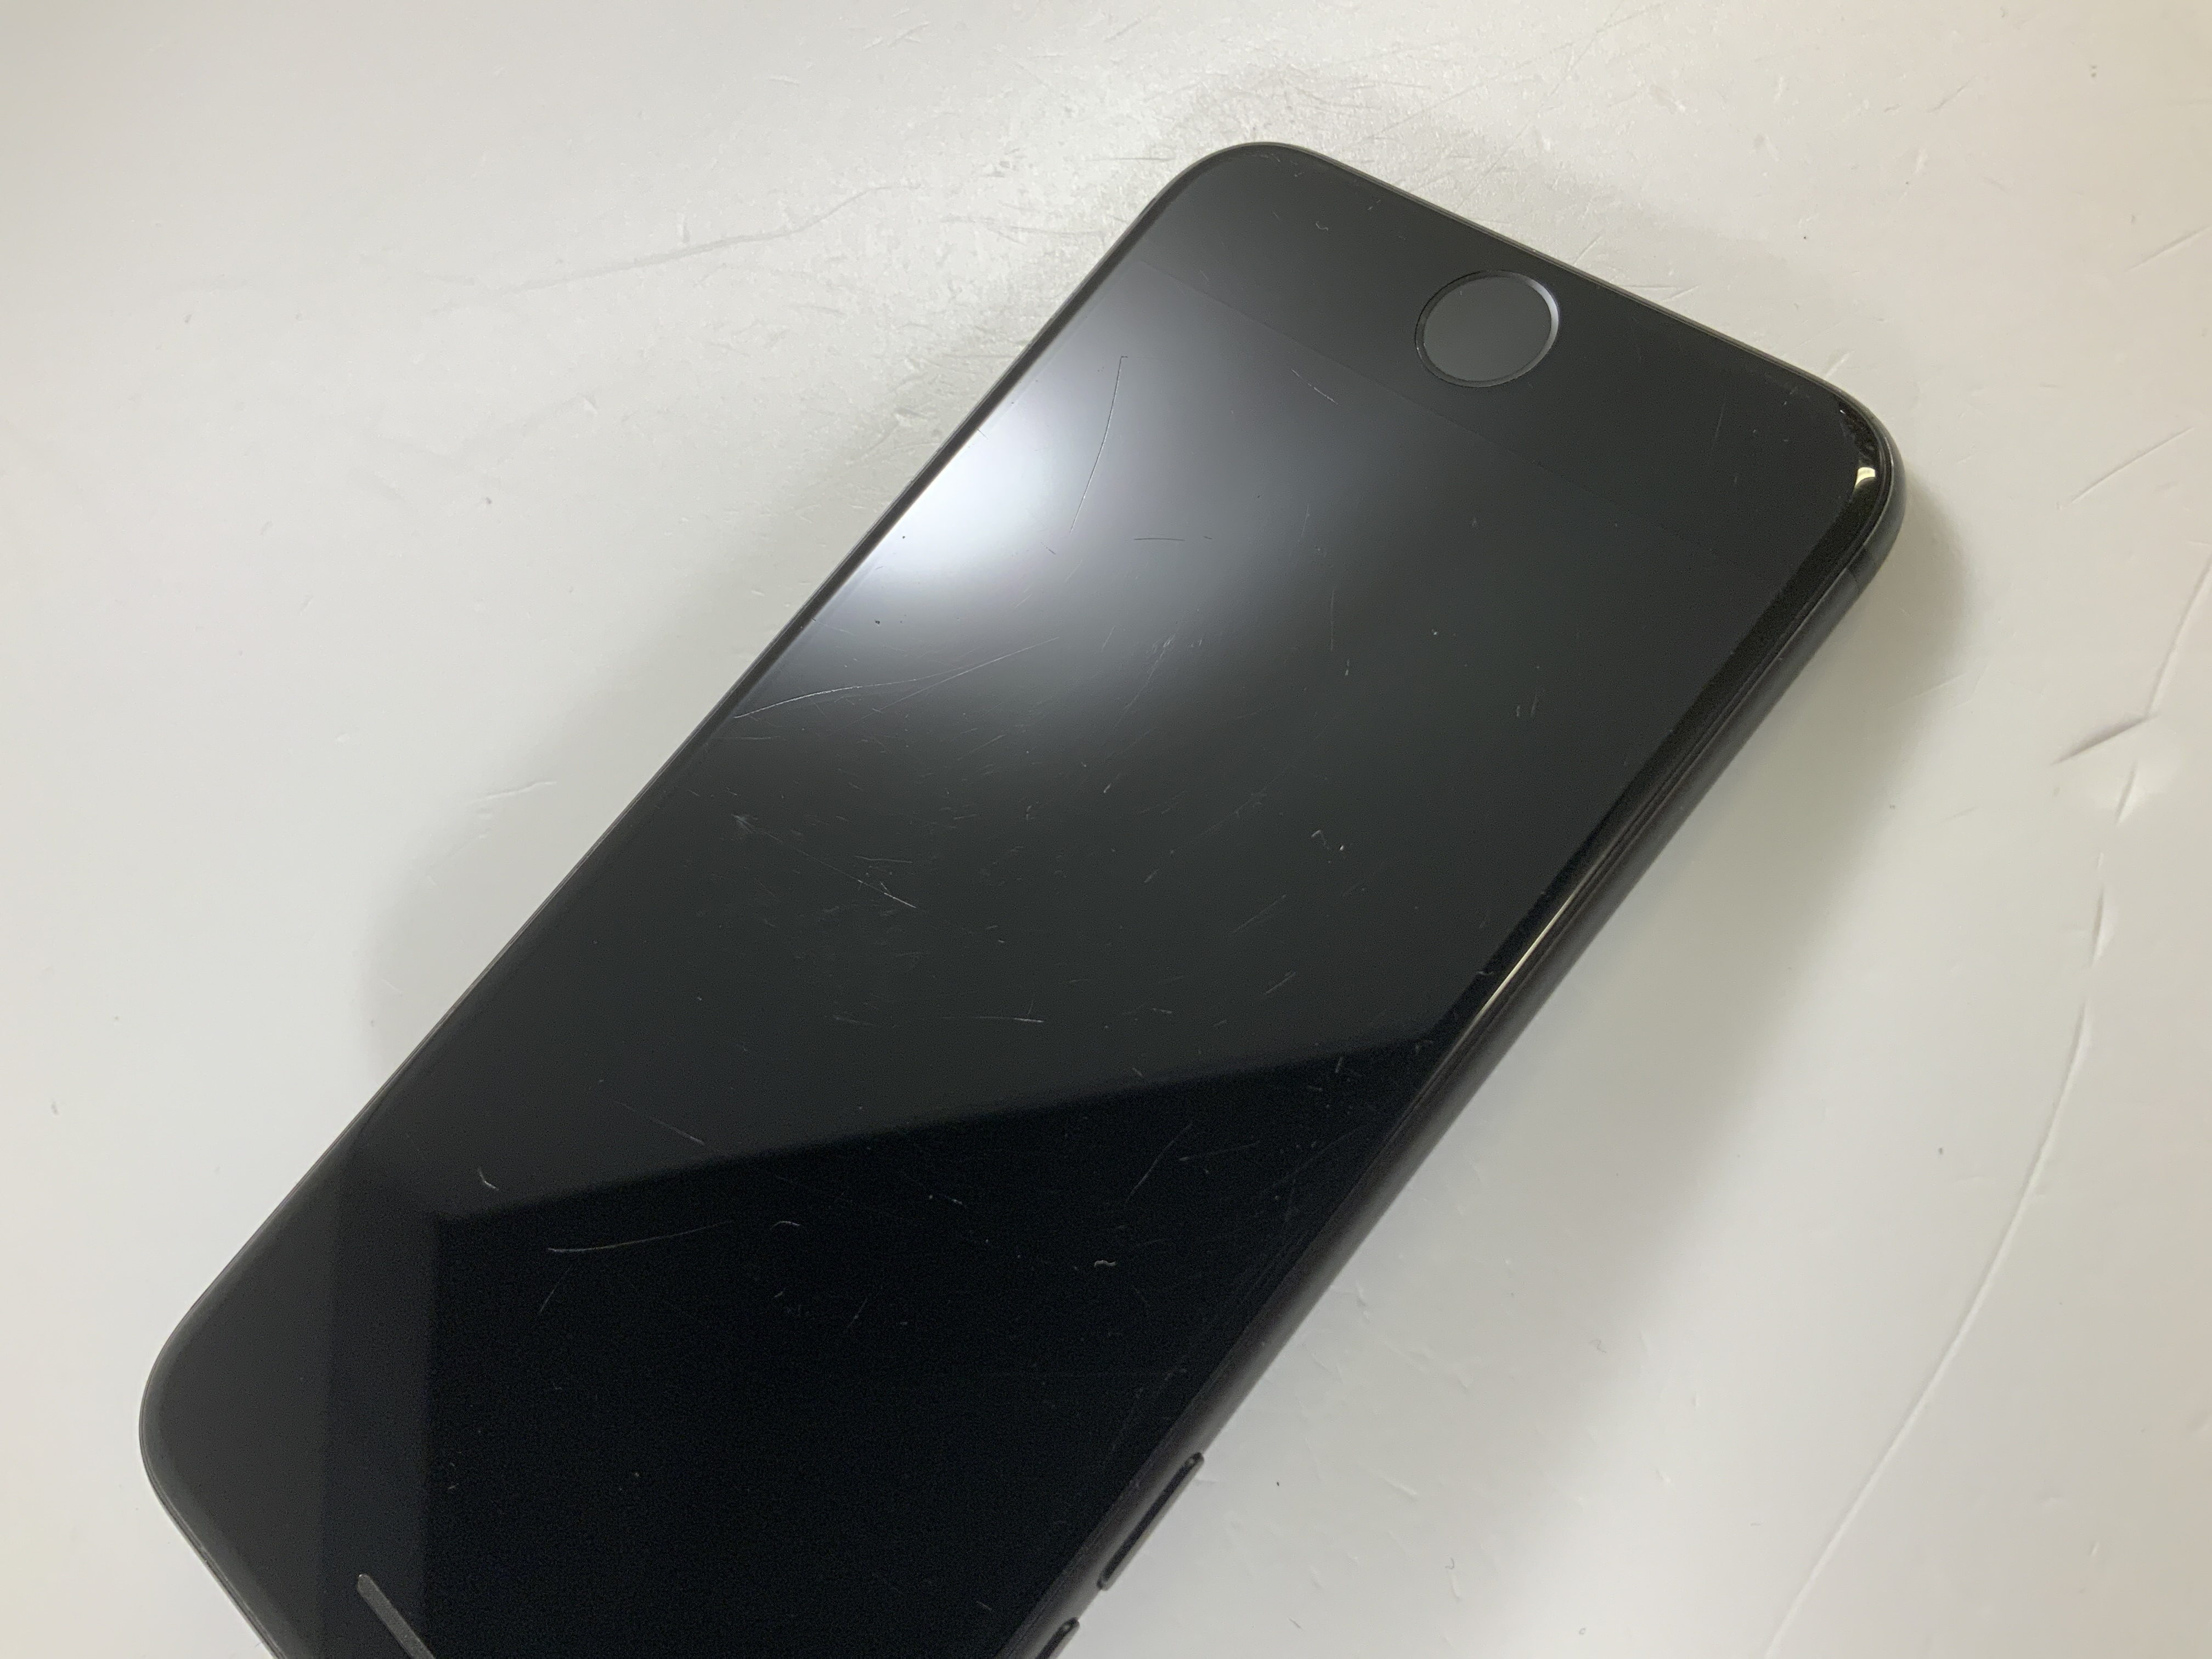 iPhone 8 64GB, 64GB, Space Gray, obraz 3